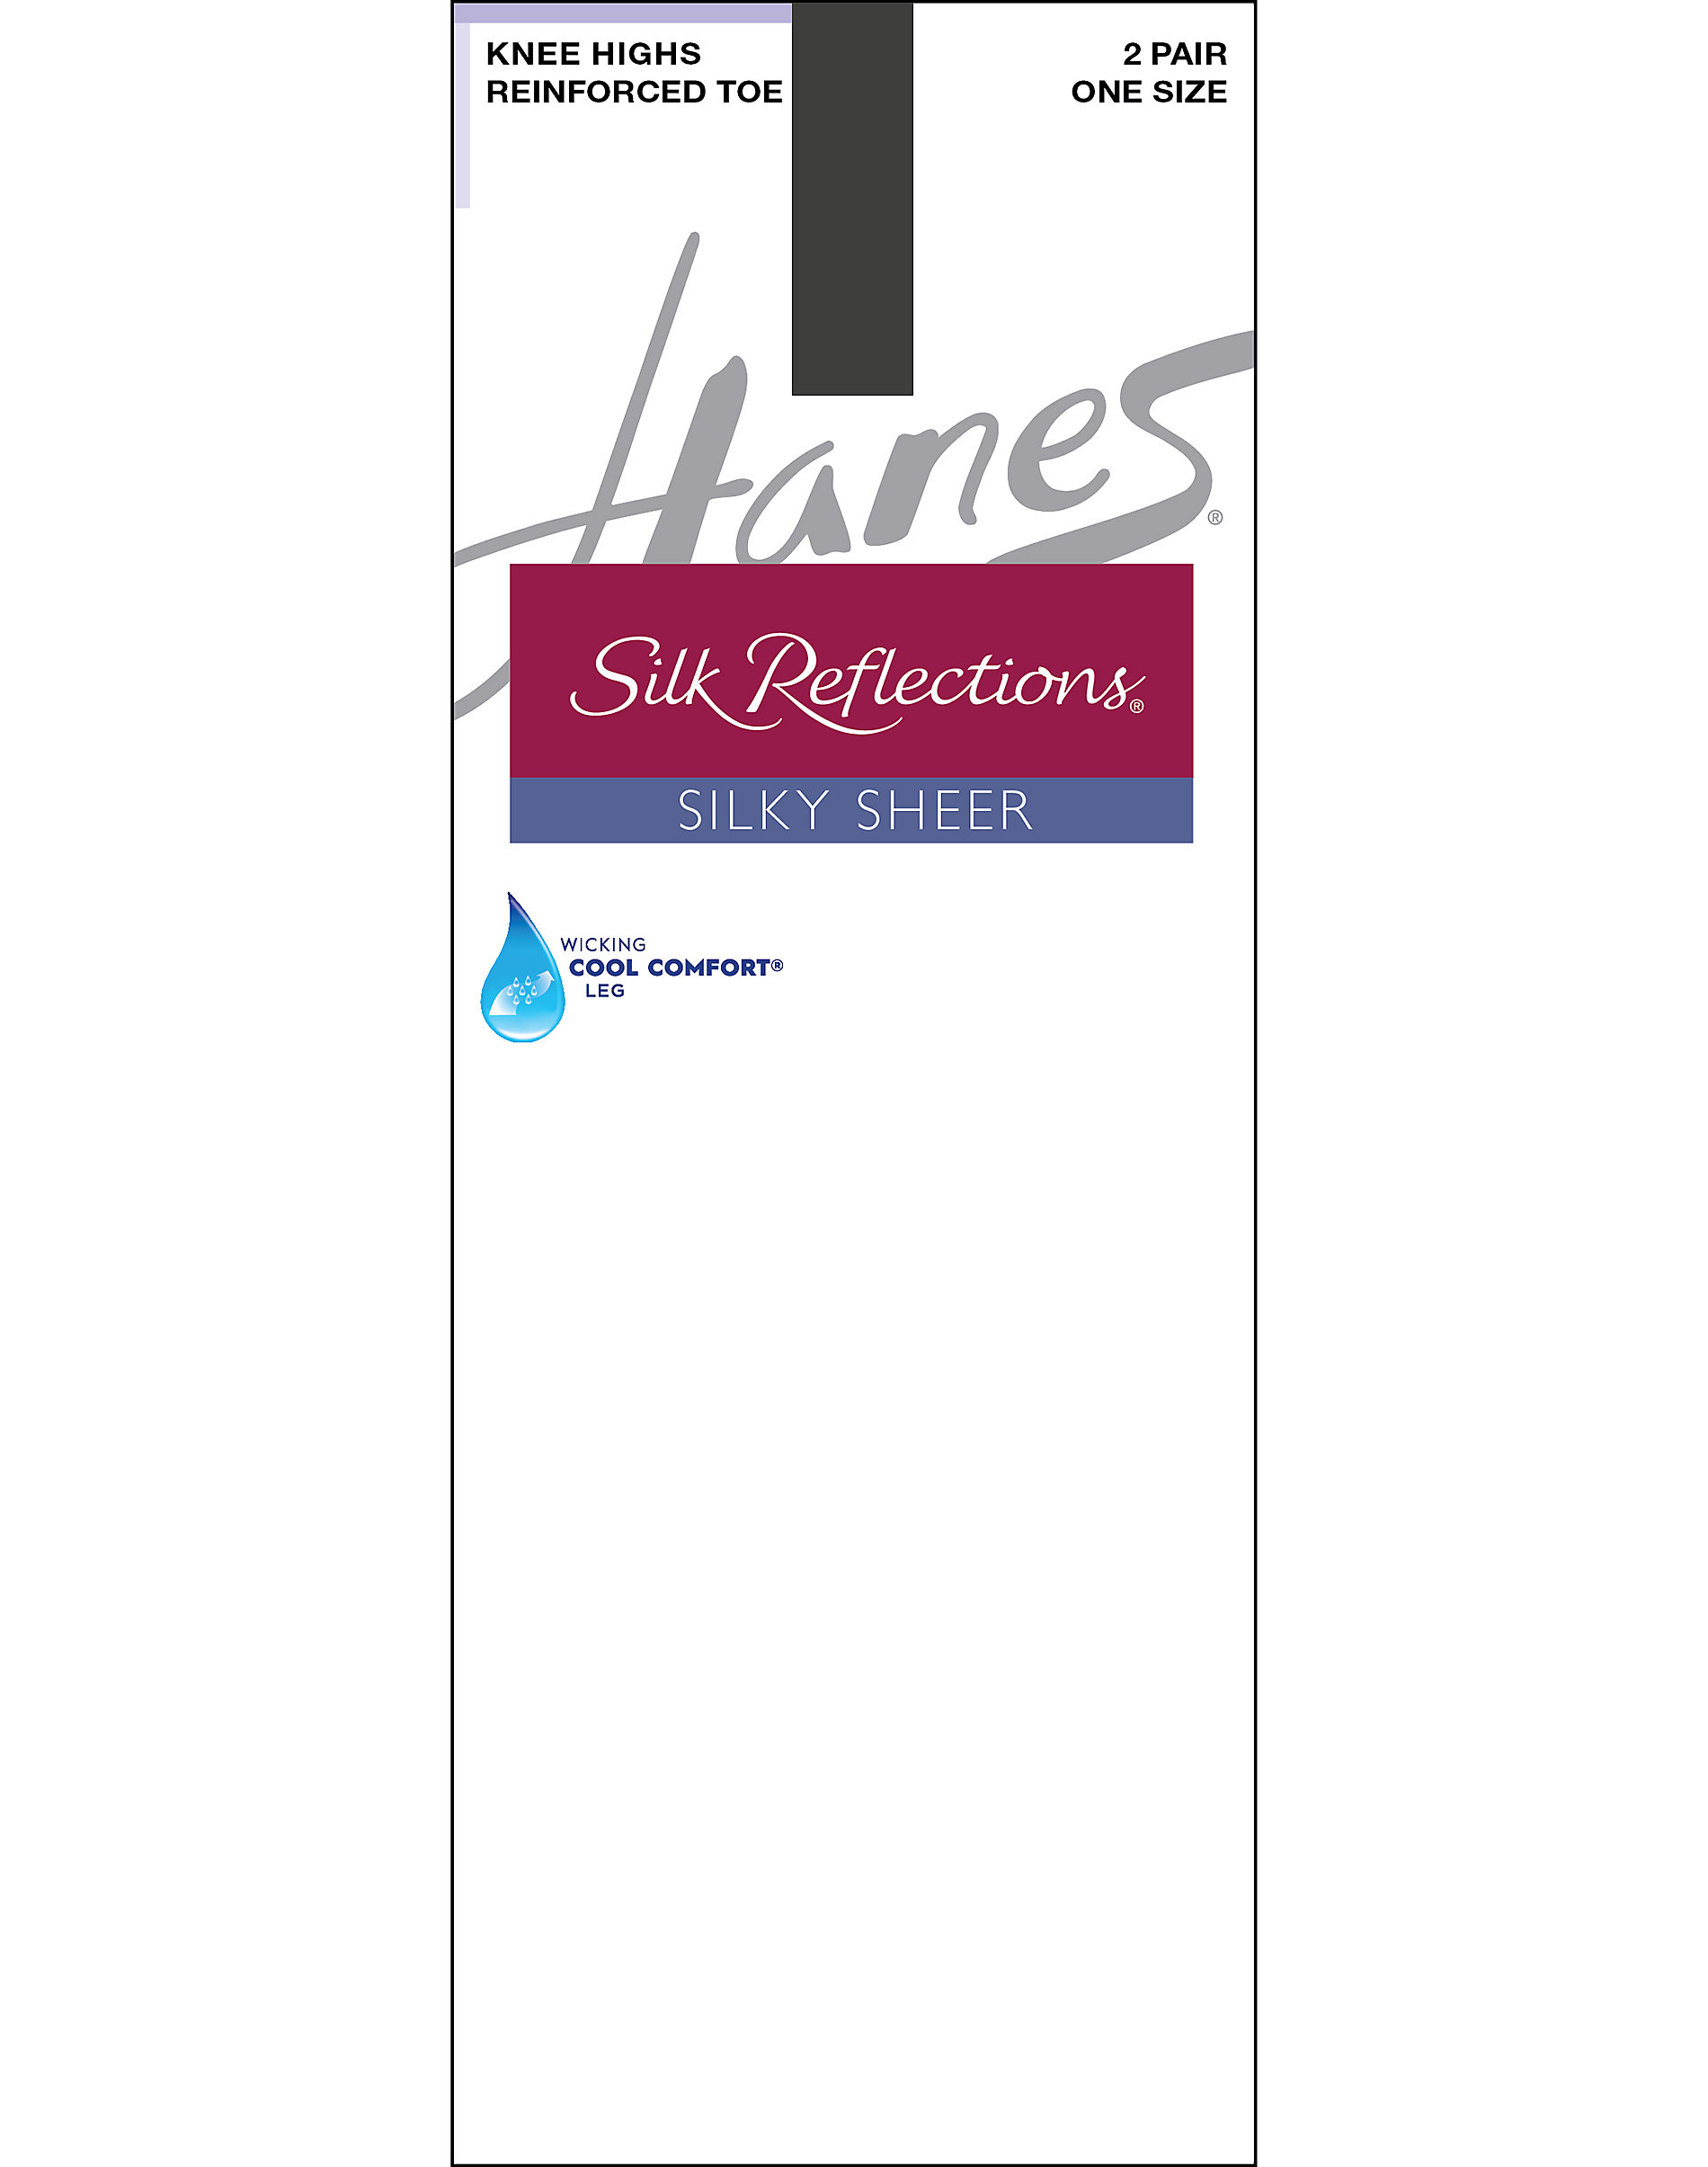 Hanes Silk Reflections Silky Sheer Knee Highs with Reinforce